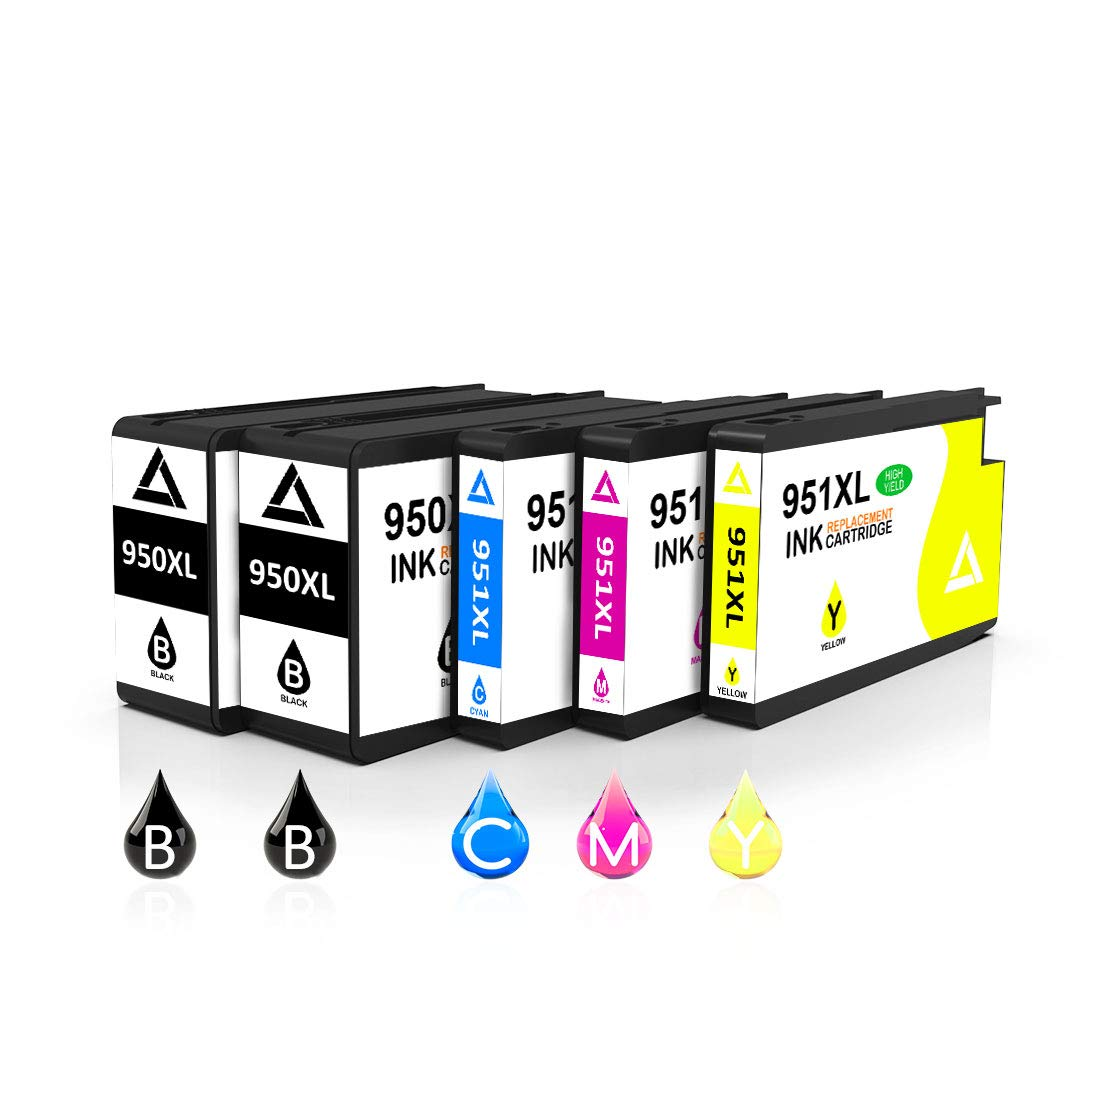 Compatible 950XL 951XL Ink Cartridge Replacement for HP 950 951 950XL 951XL Works with OfficeJet Pro 8600 8610 8620 8100 8615 8625 8630 251DW (2 Black/1 Cyan /1 Magenta/1 Yellow) by Toner Kingdom